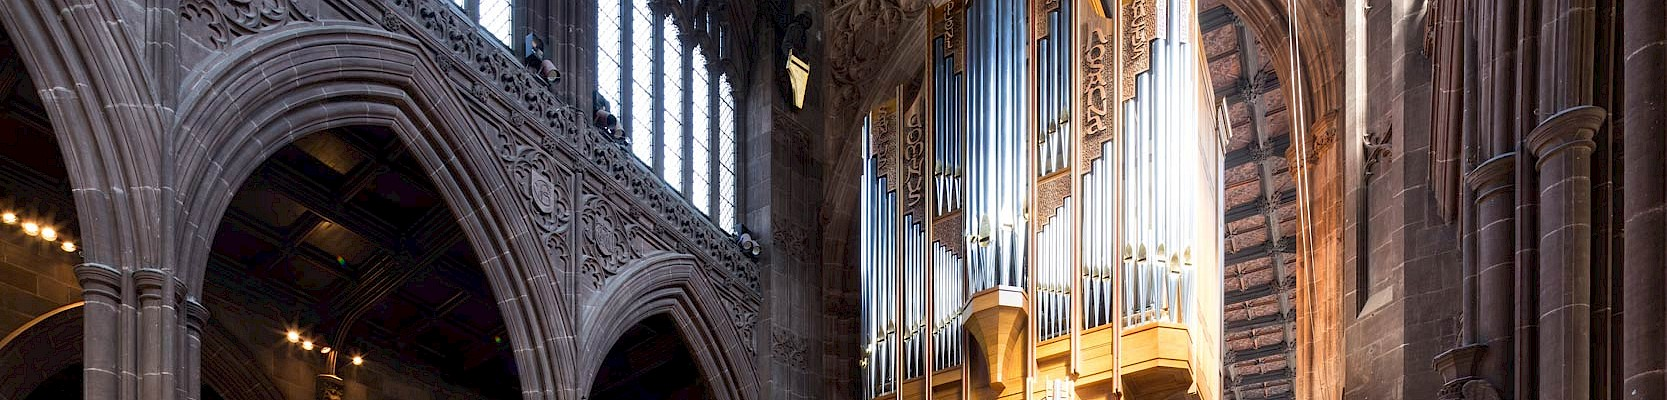 Panoramic view of the Manchester Cathedral Organ